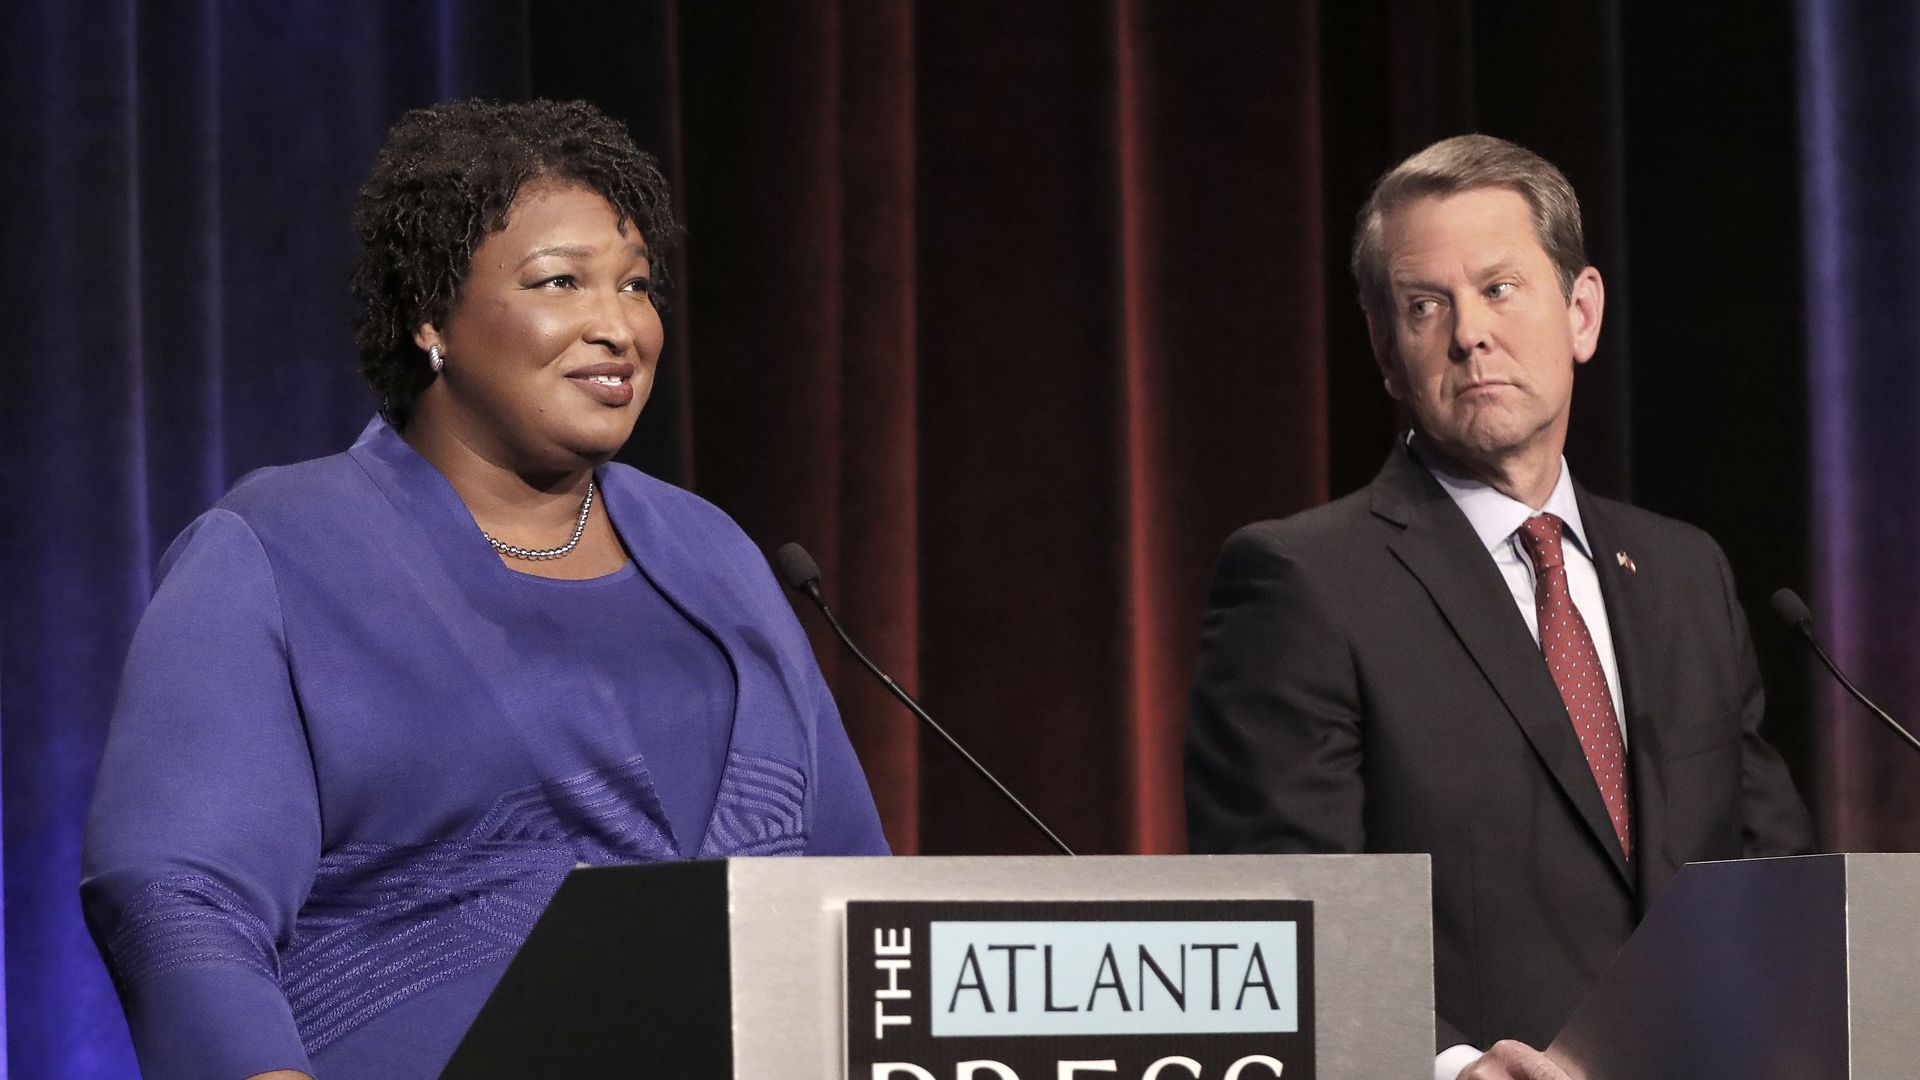 Georgia gubernatorial candidates (L-R) Democrat Stacey Abrams and Republican Brian Kemp debate last week in Atlanta, Georgia. Photo: John Bazemore-Pool/Getty Images